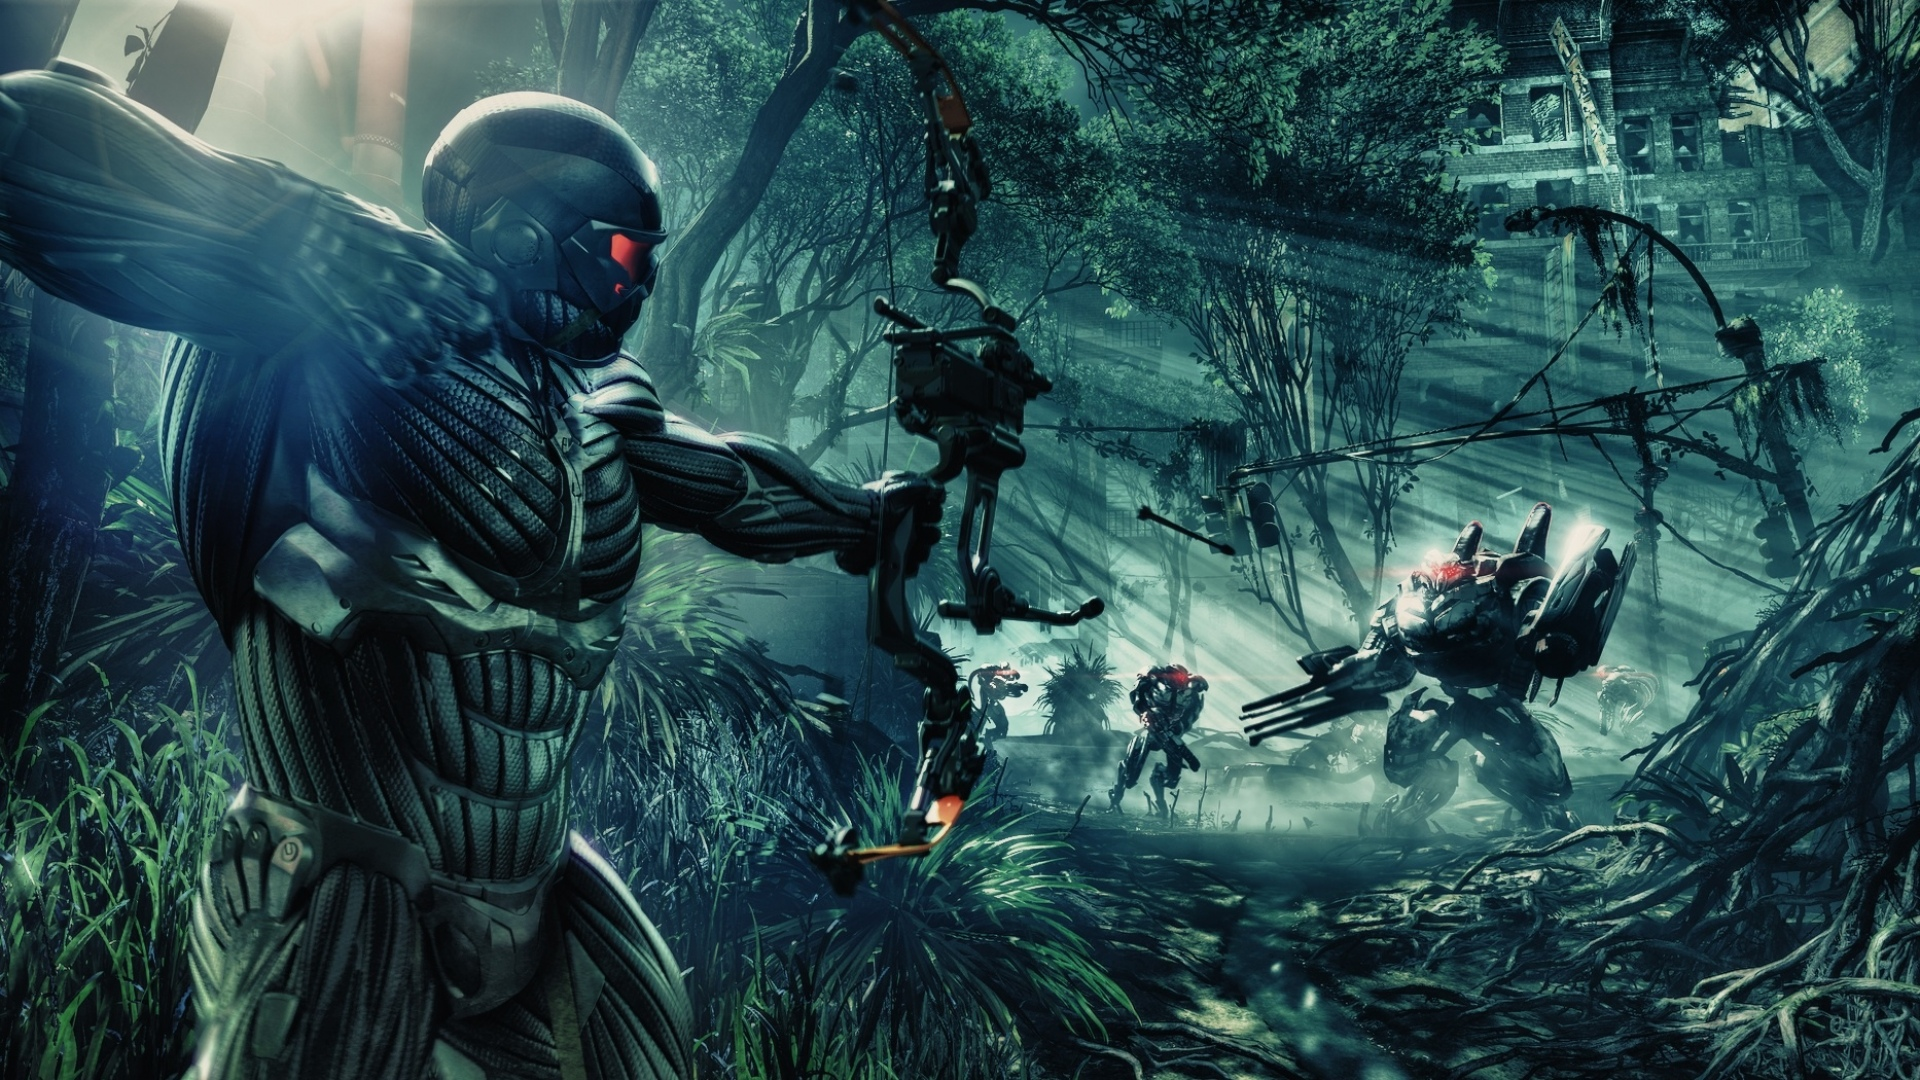 crysis 4 wallpaper hd - photo #17